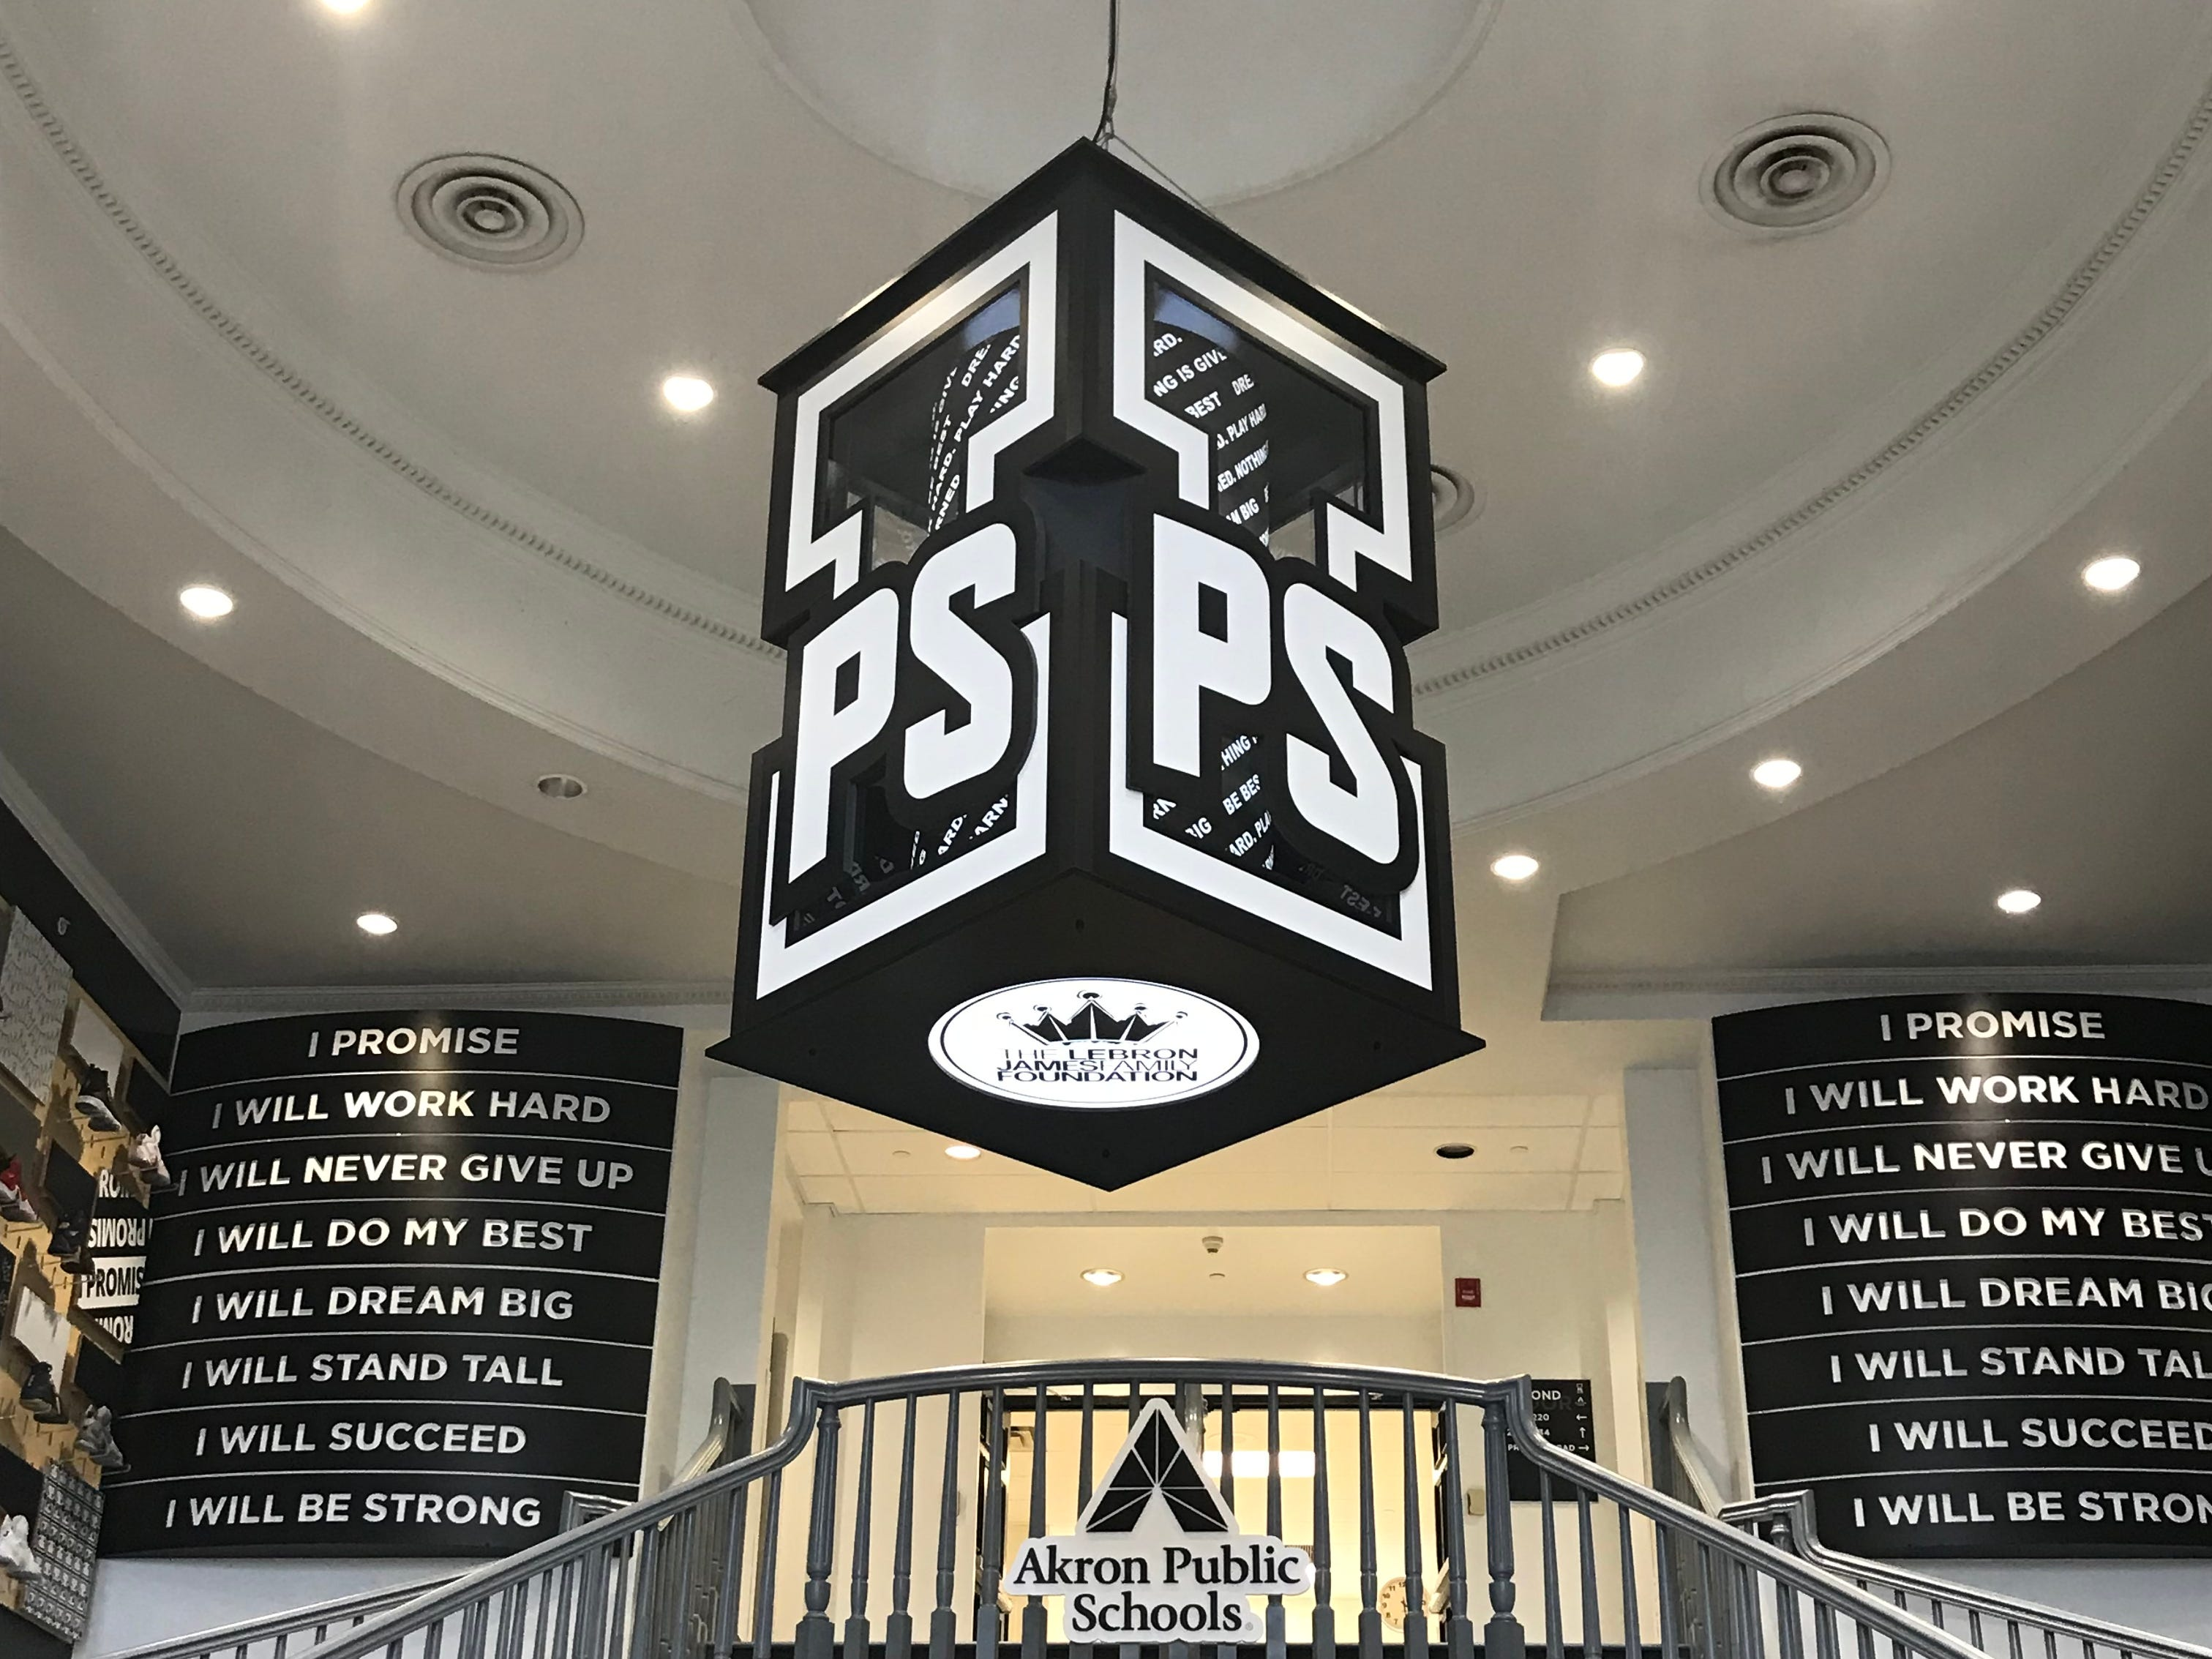 The LeBron James Family Foundation partnered with Akron Public Schools to launch the I Promise School for at-risk elementary students in the superstar's hometown in northeast Ohio.